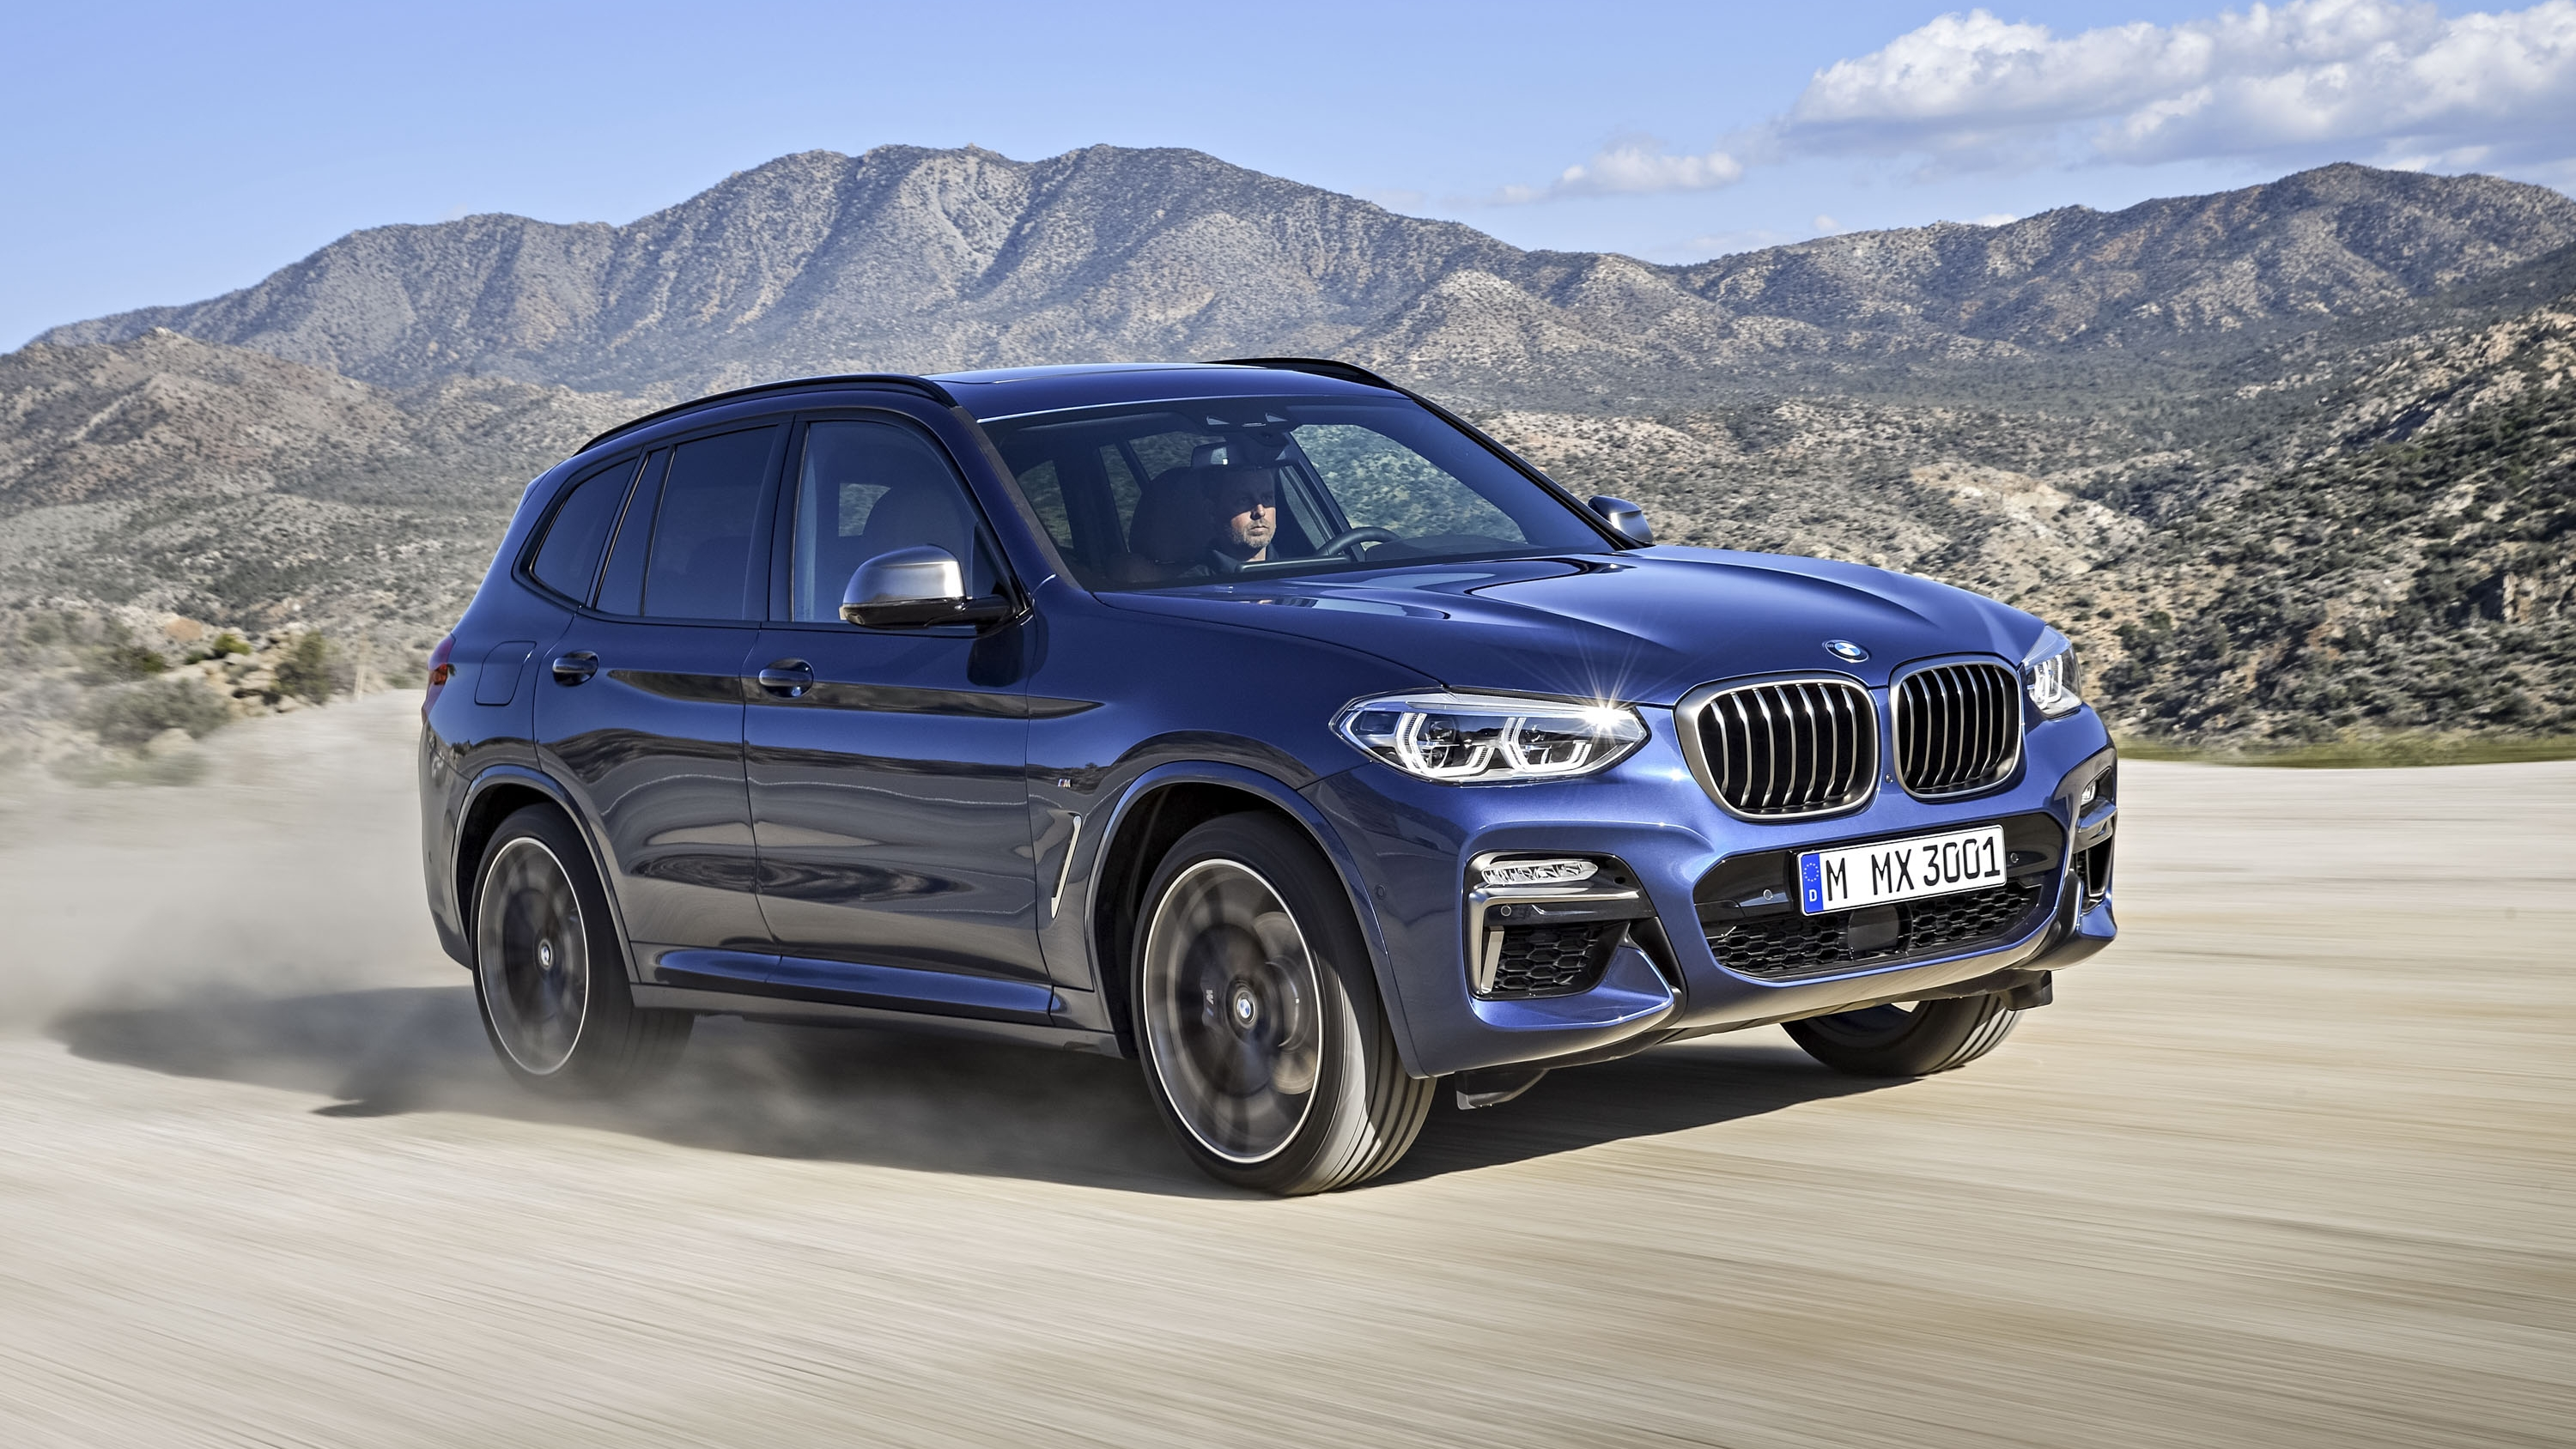 2019 BMW X3 M Pictures, Photos, Wallpapers.